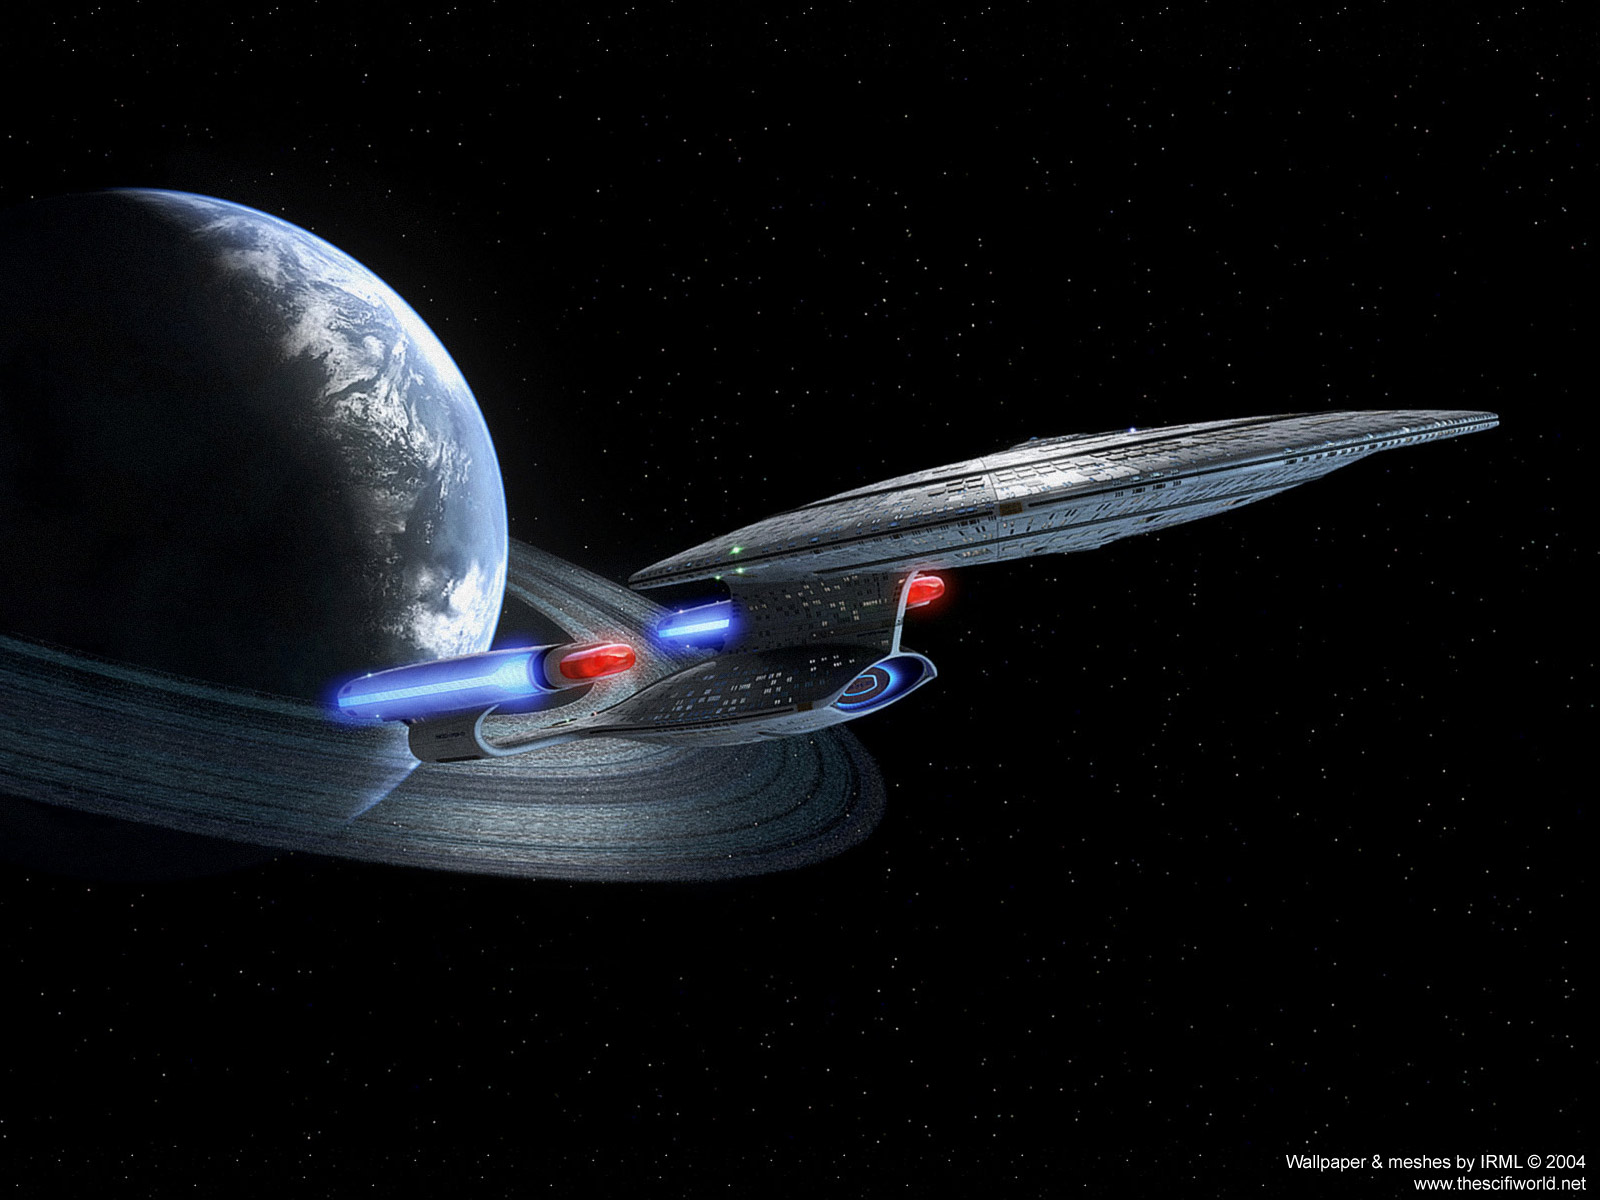 star trek wallpapers wallpaper images tv shows sci-fi pictures scifi